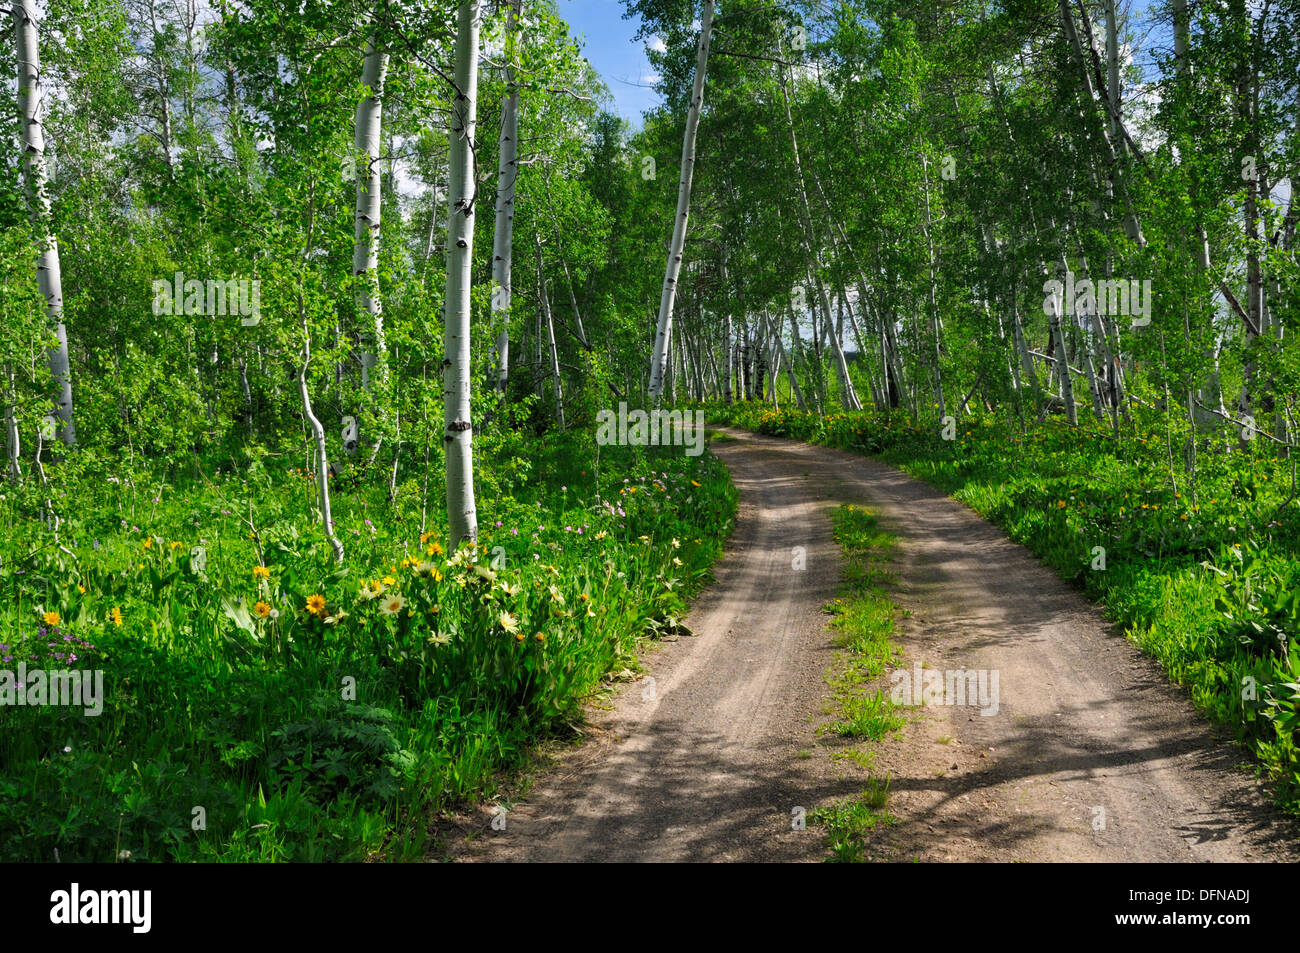 Dirt road through wildflowers vanishes into quaking aspens - Stock Image